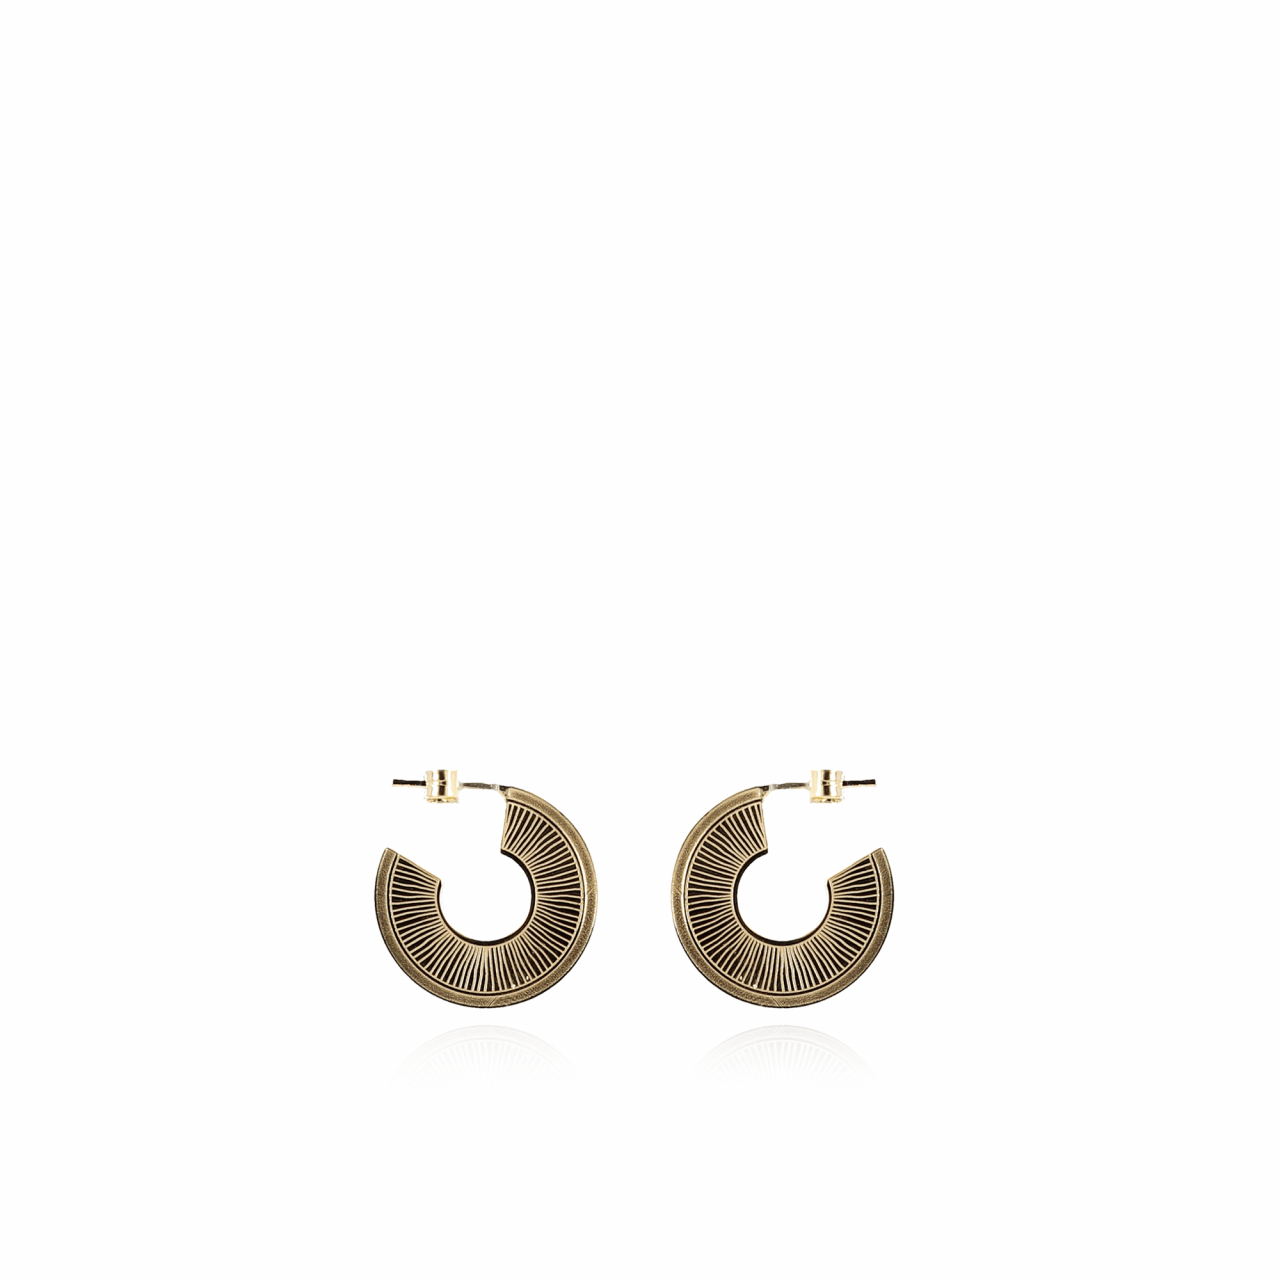 Golden classic round shell earrings